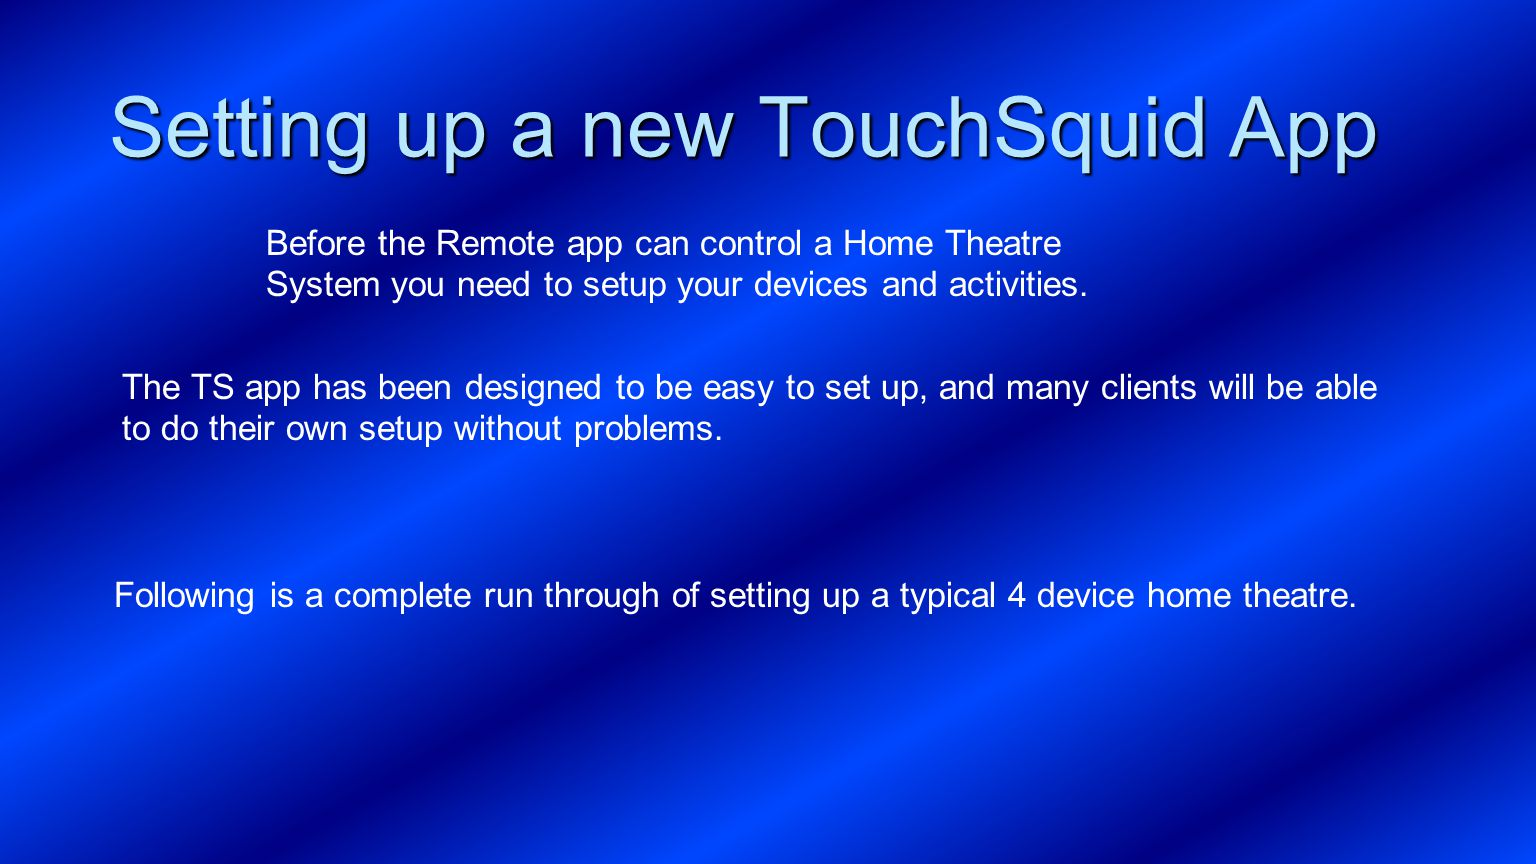 Setting up a new TouchSquid App Before the Remote app can control a Home Theatre System you need to setup your devices and activities. The TS app has